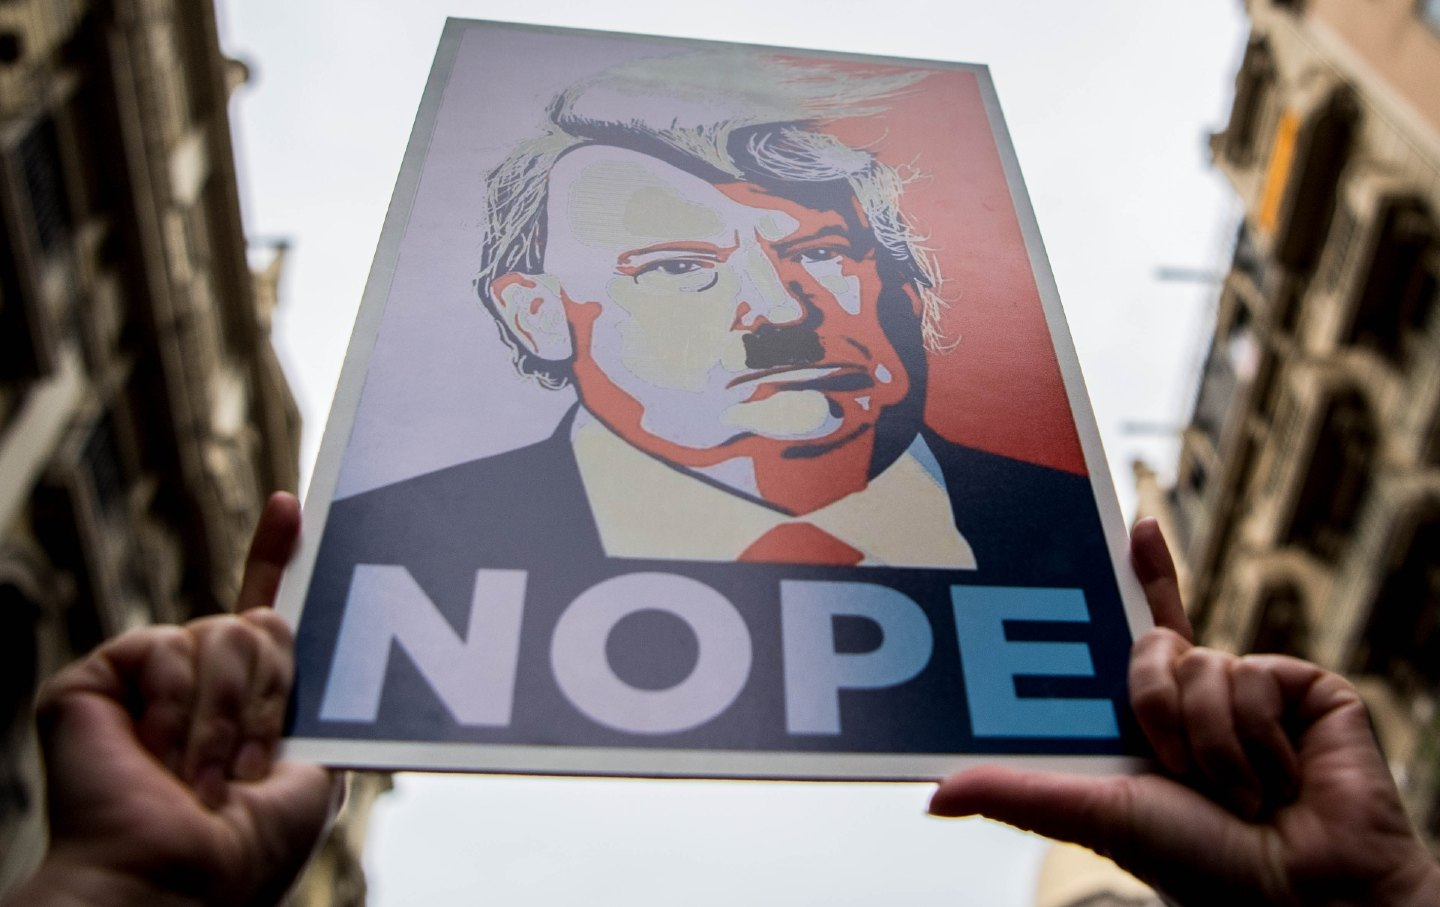 Poster of Trump at a women's march rally that says